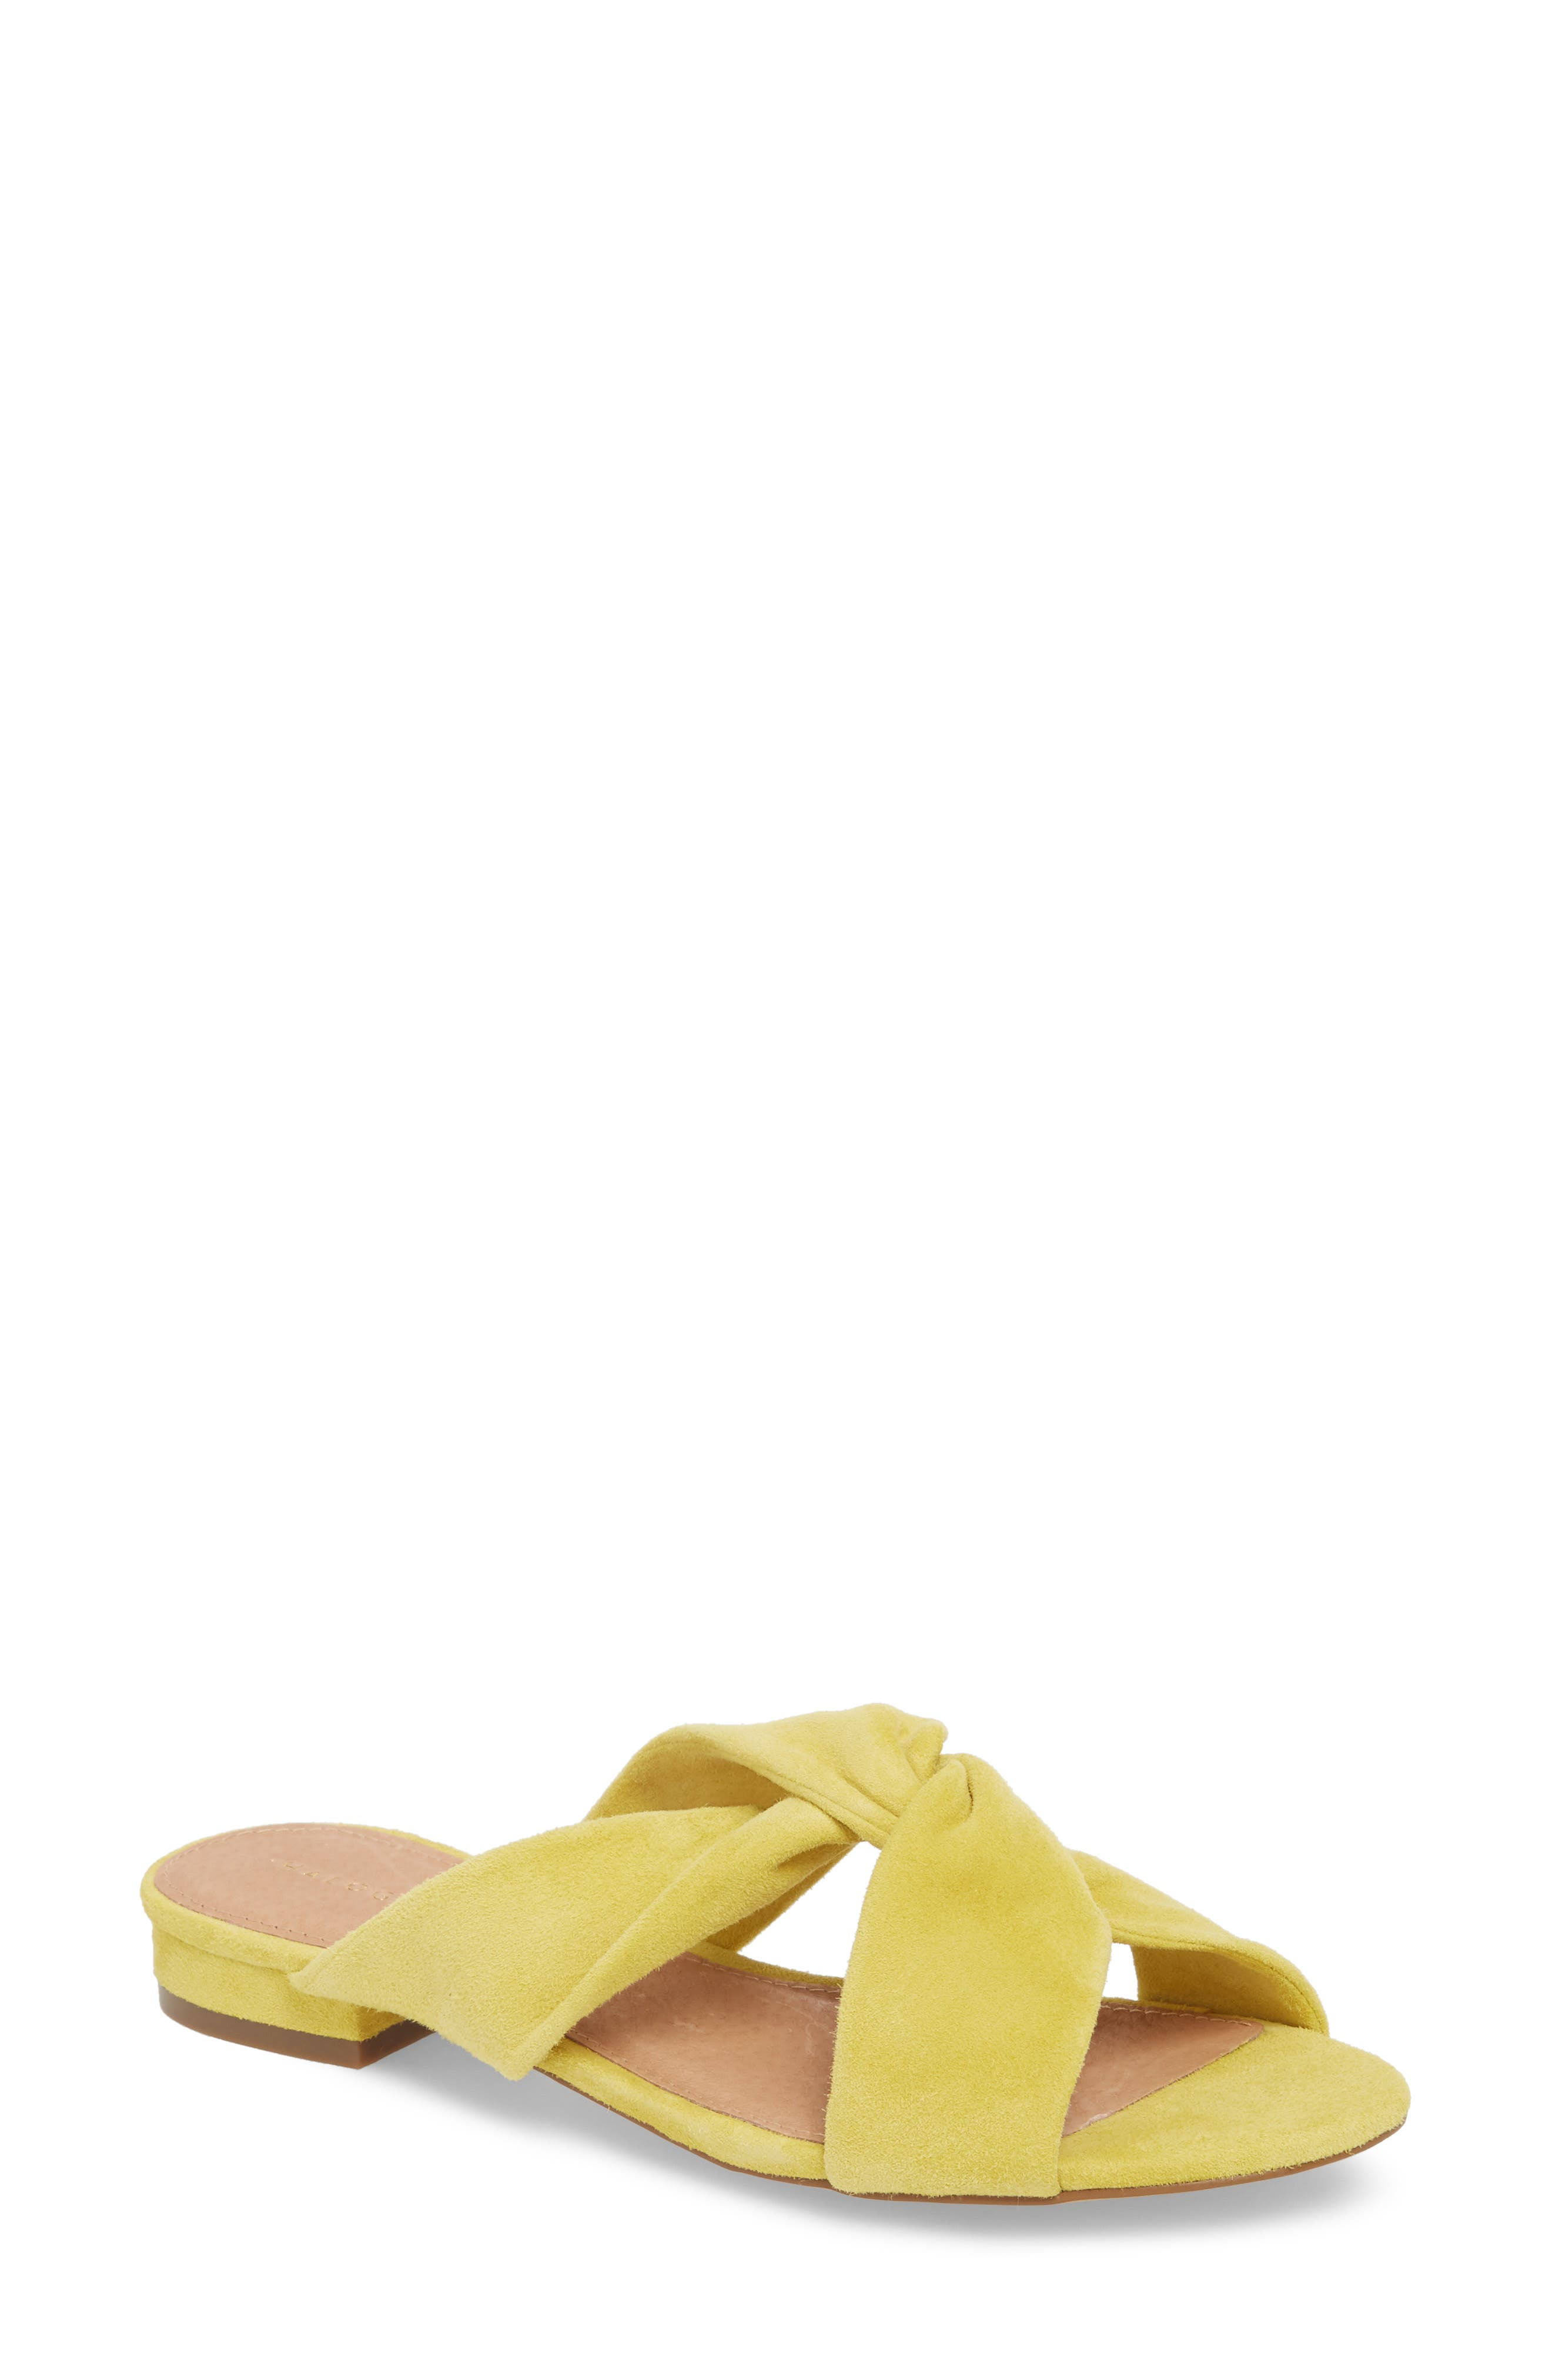 Andre Slide Sandal,                             Main thumbnail 1, color,                             Mustard Suede